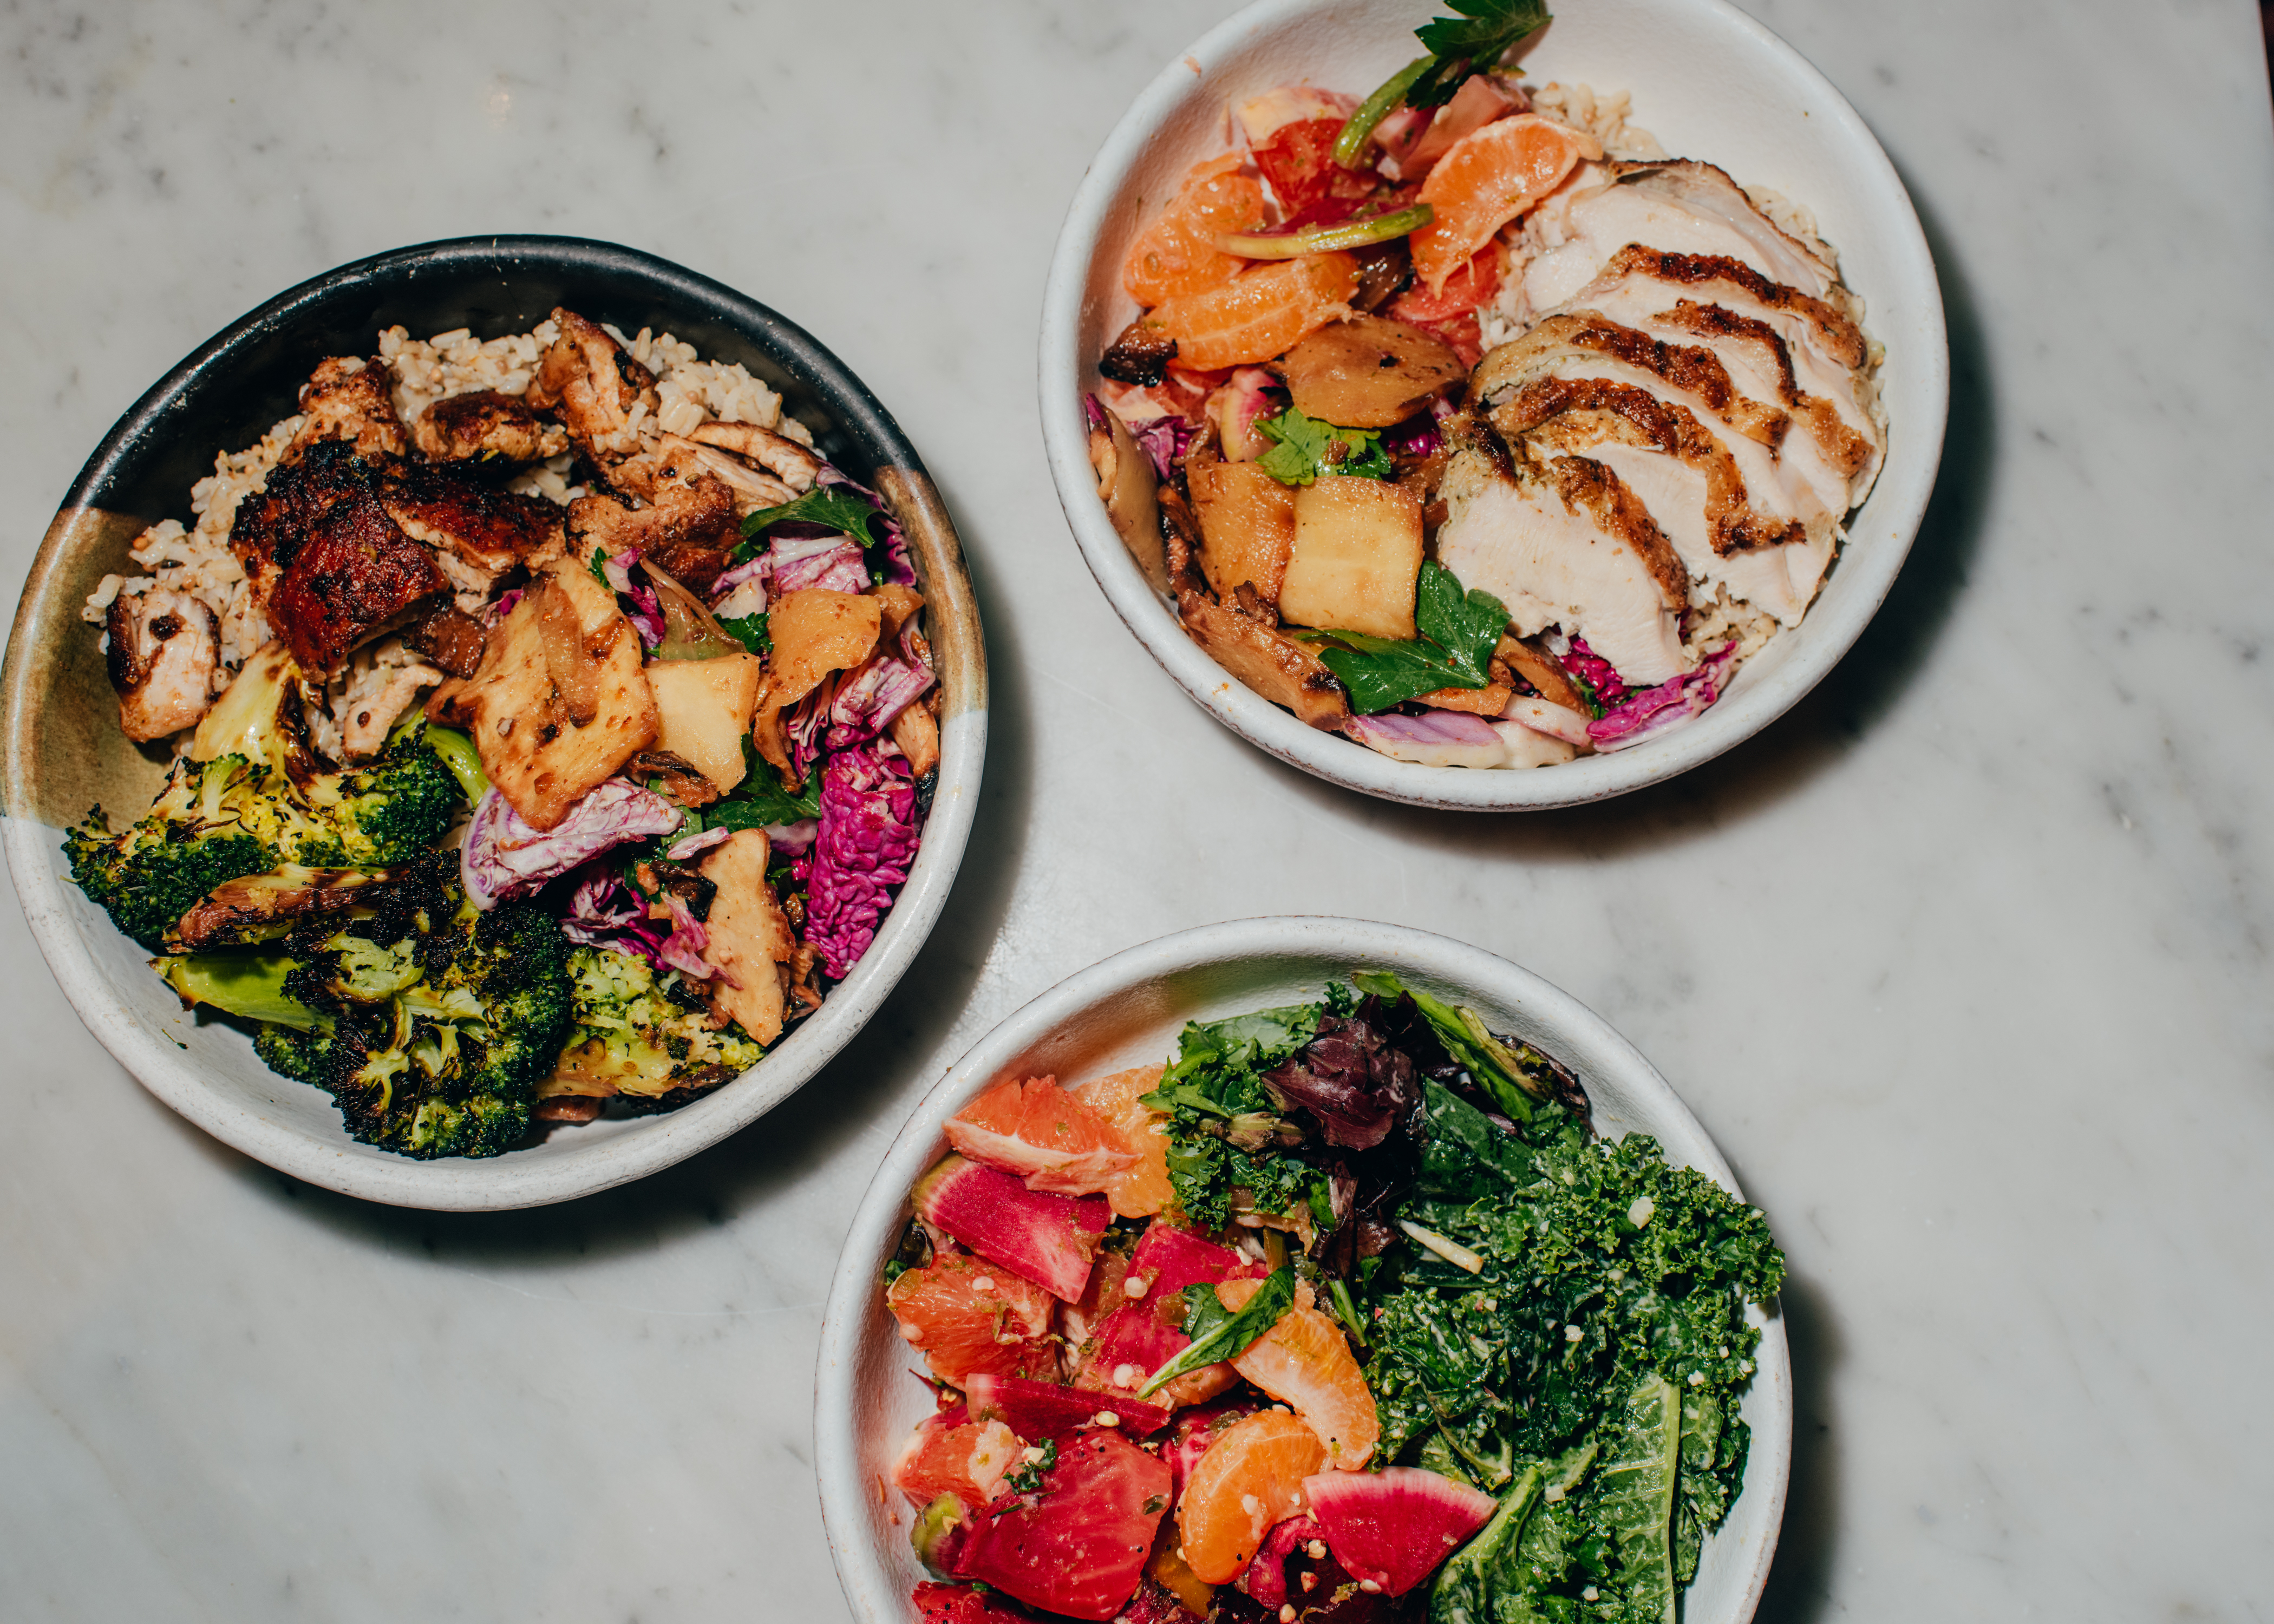 The Fast-Casual, Veggie-Promoting Dig Opens Its First Philly Location